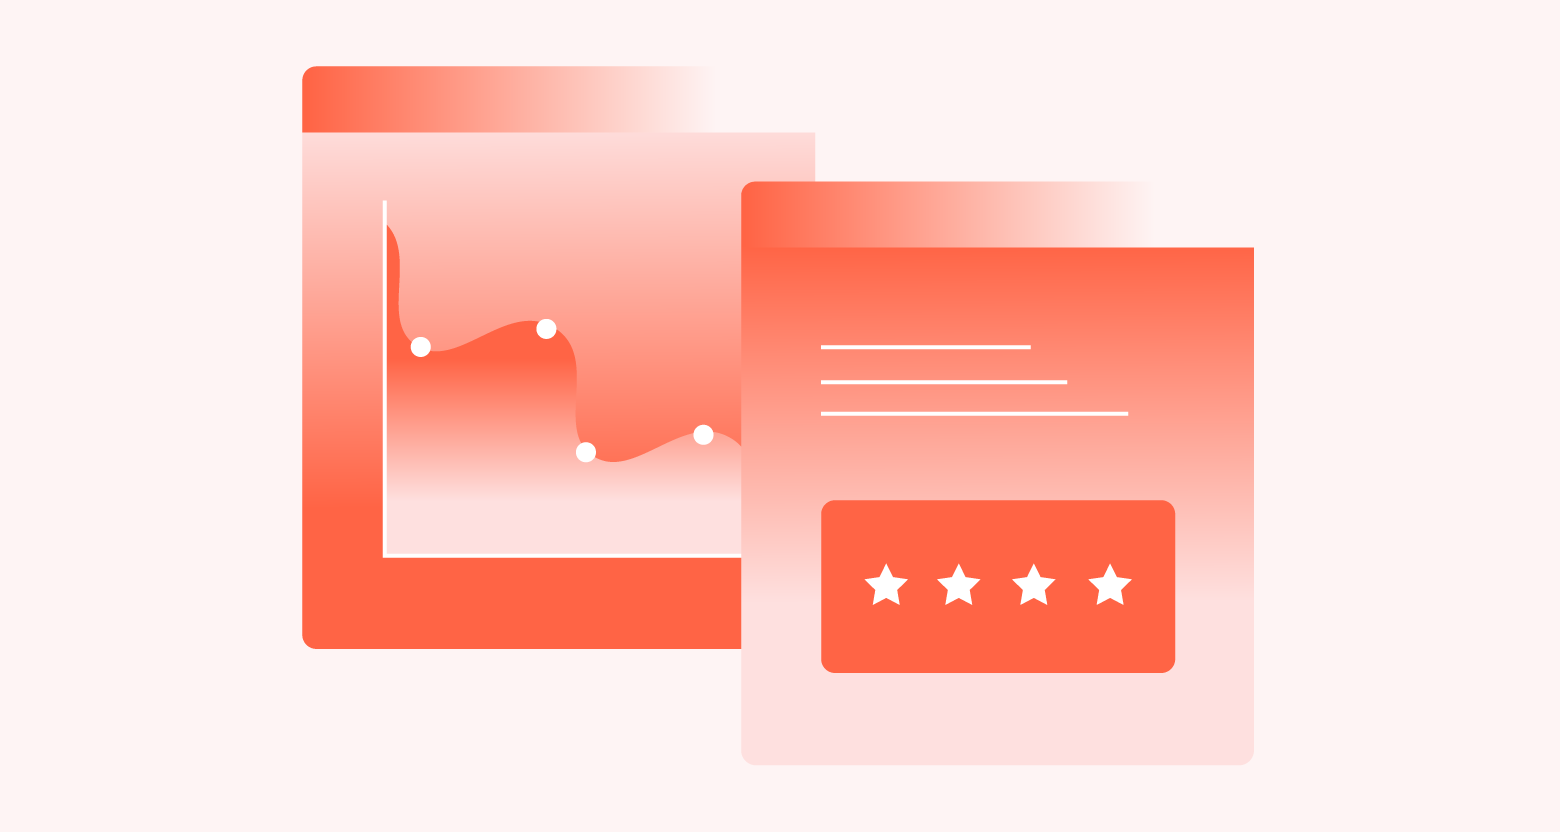 Data on a website dashboard and feature review comment.